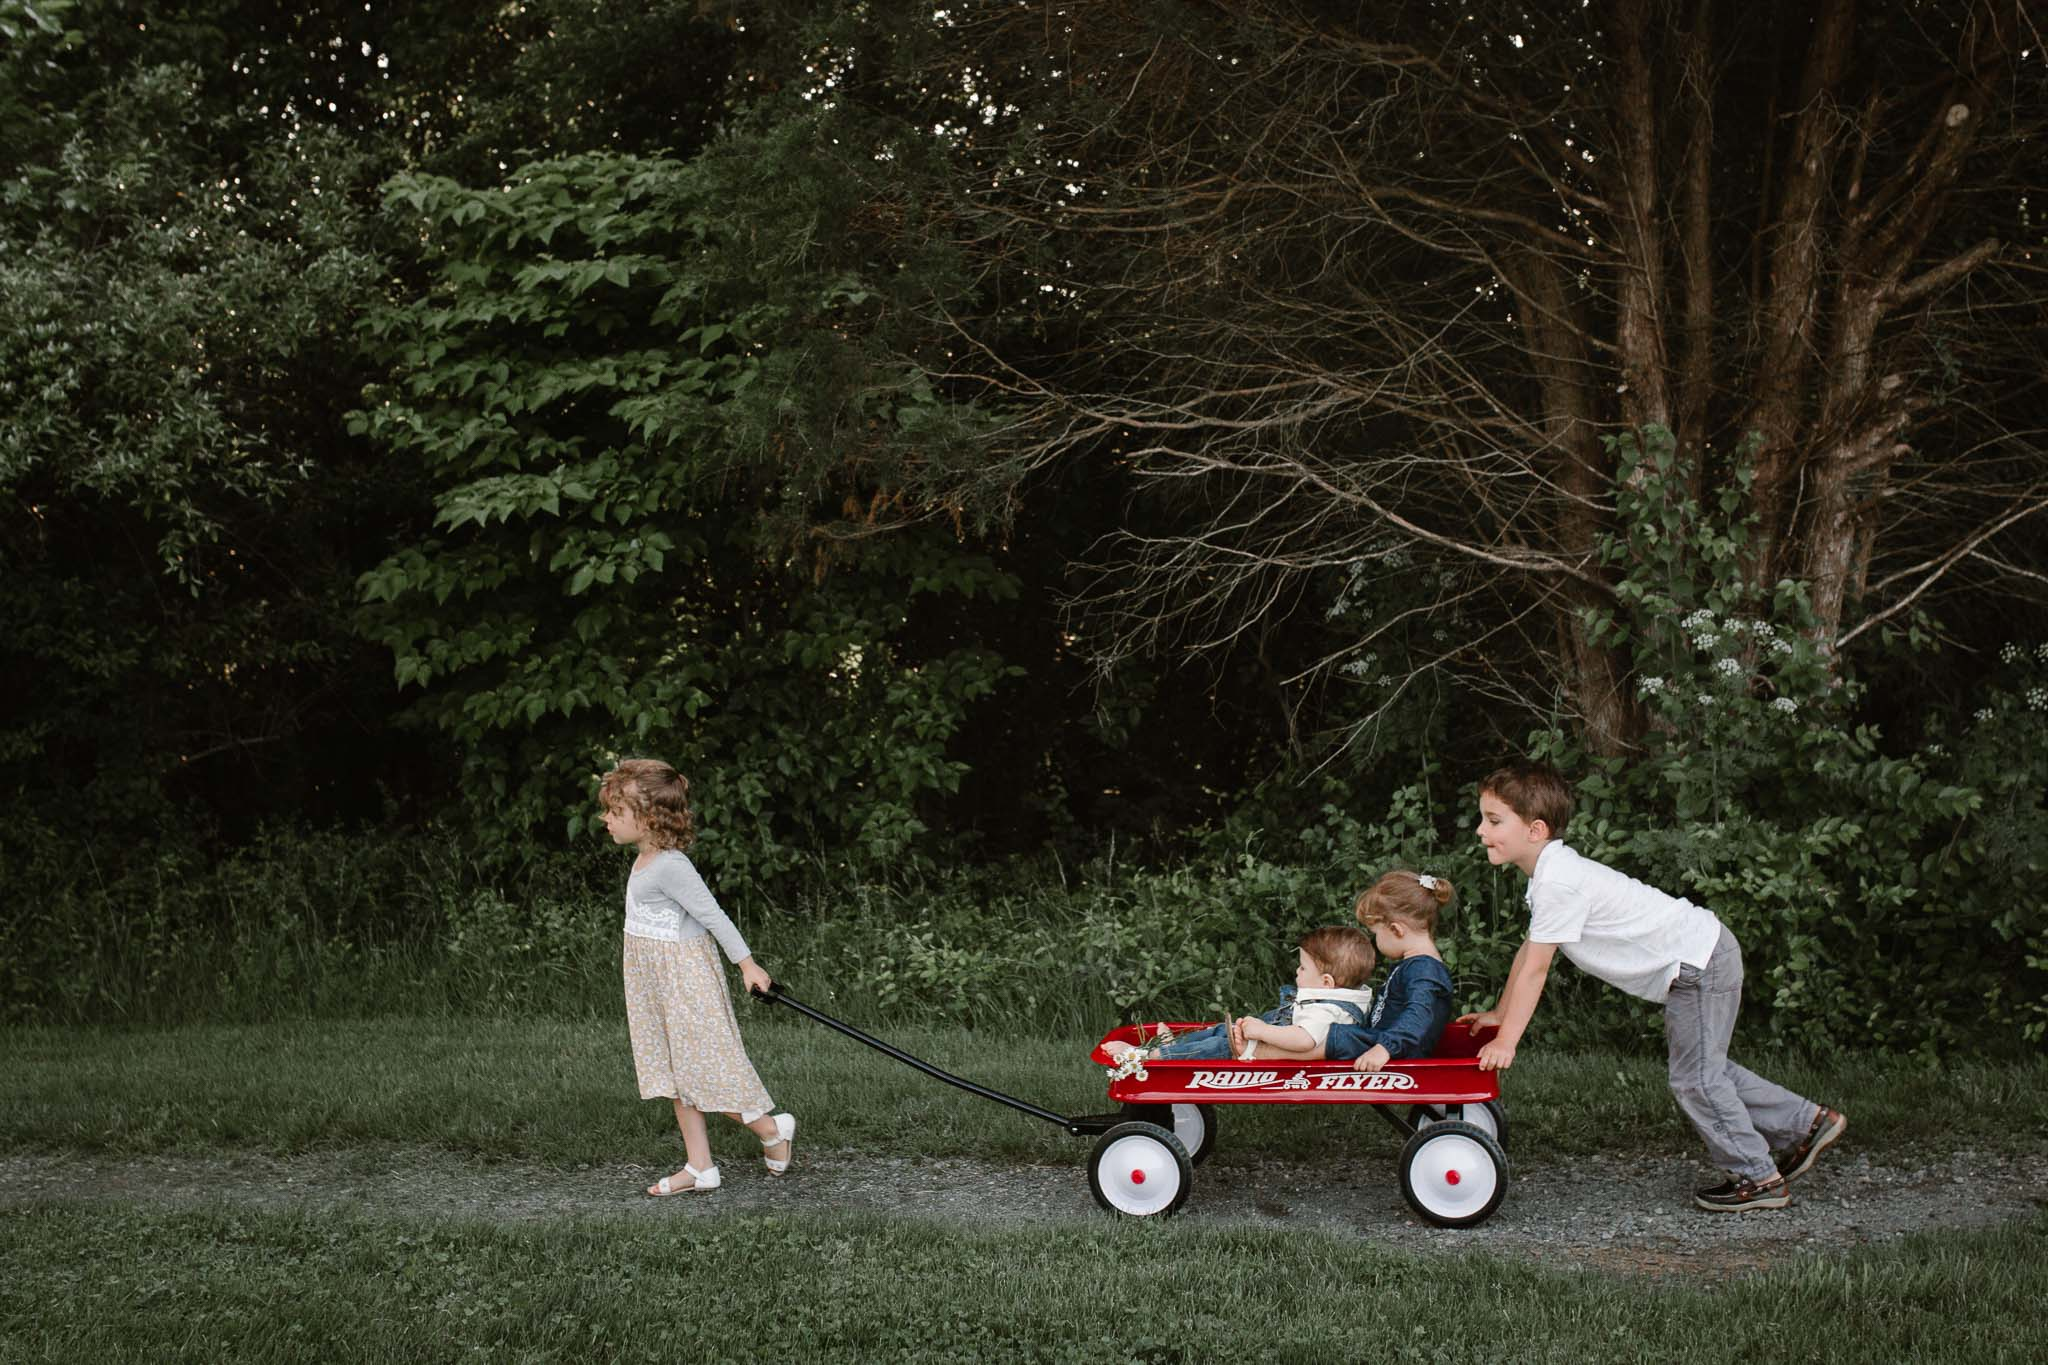 Lifestyle family photography four siblings riding in and pushing a red radio flyer wagon  at Bles Park in Ashburn, Virginia